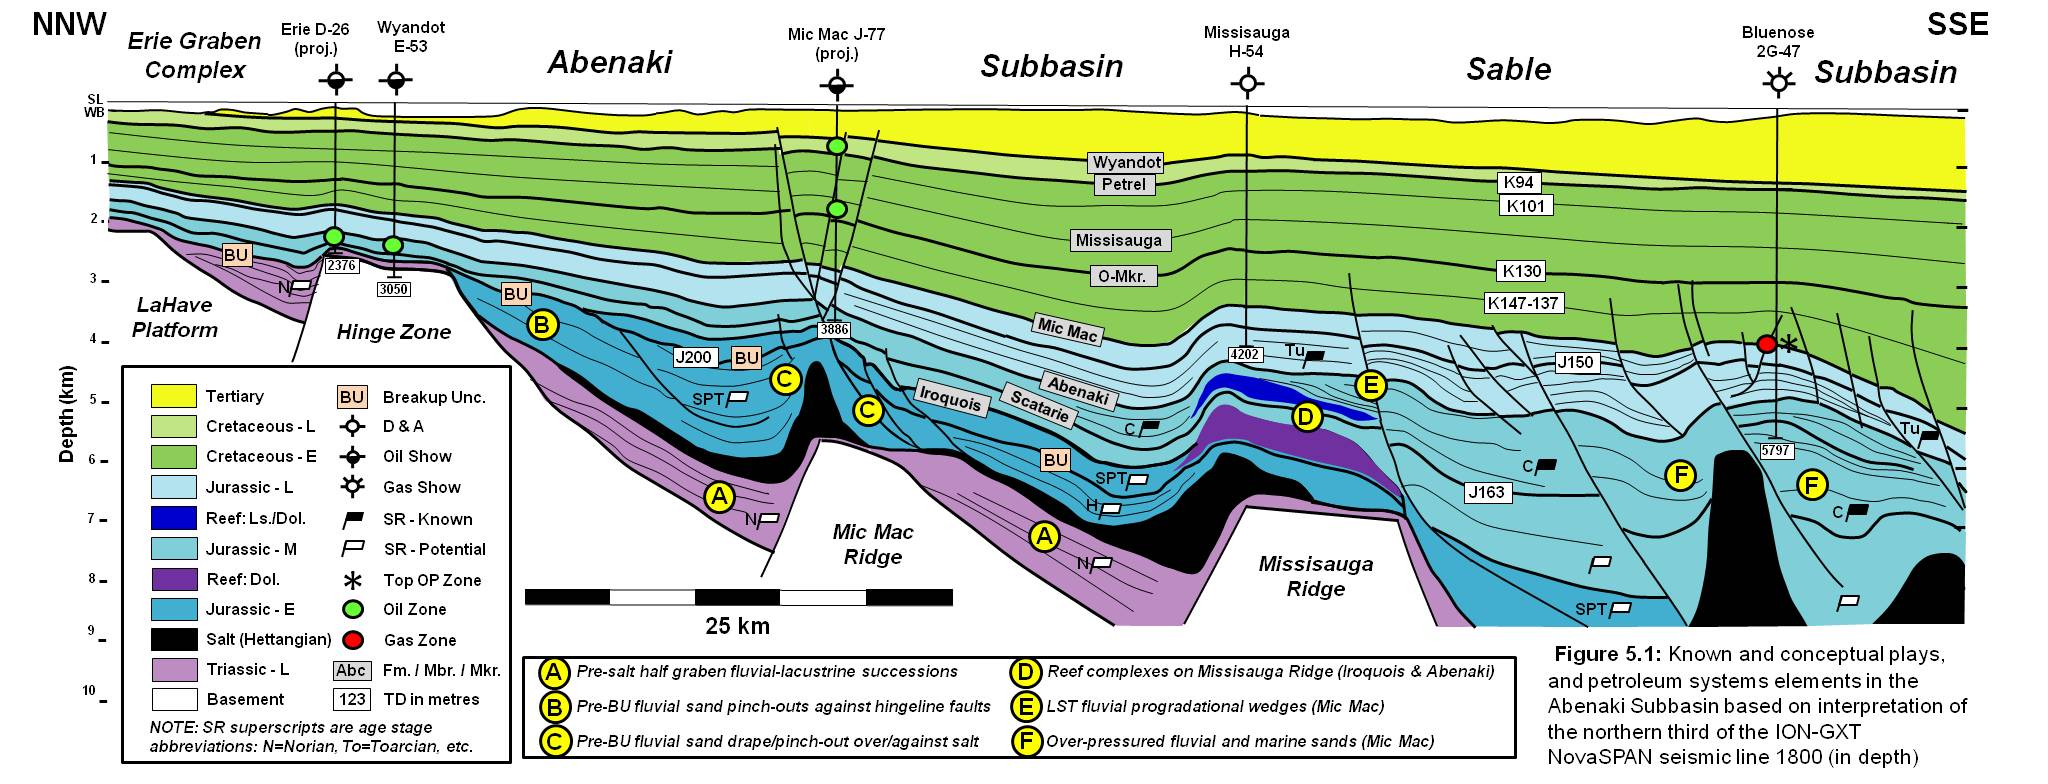 petroleum traps gulf of suez term paper World petroleum resources project assessment of undiscovered oil and gas resources  and traps in mid-miocene, rifting ceased in the gulf of suez—the  gulf of suez au oil 127 309 610 1,120 649 305 654 1,392 727 14 30 67 34 gas 126 22 97 599 177 1 6 39 11.